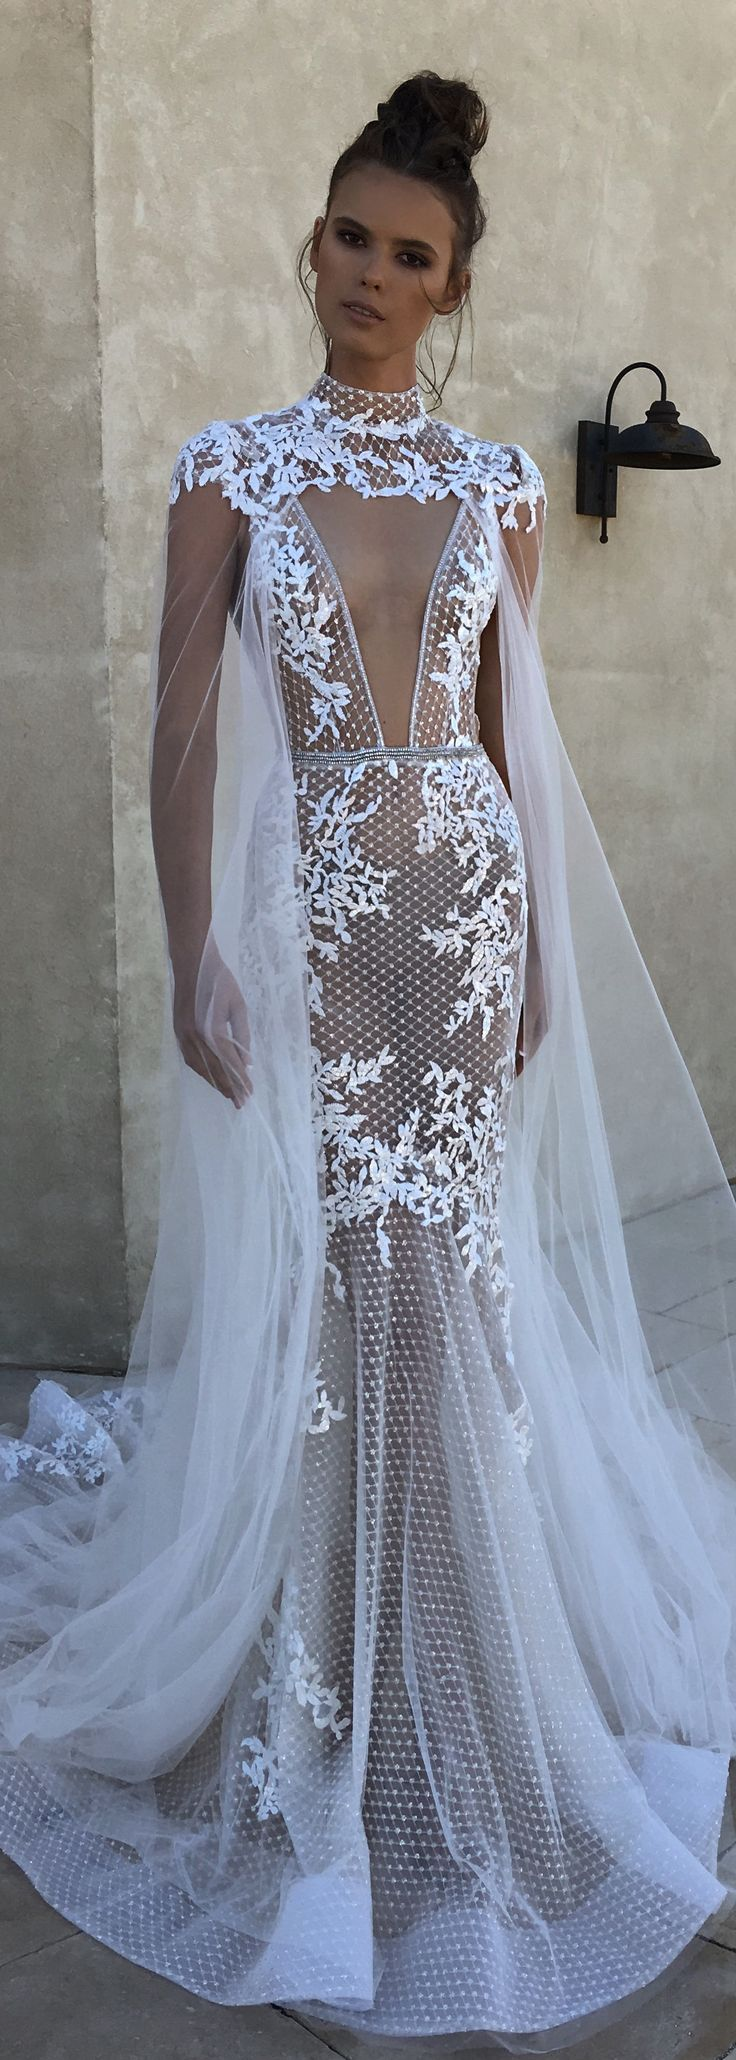 Fitted Wedding Dress with cape by Berta Bridal   @bertabridal